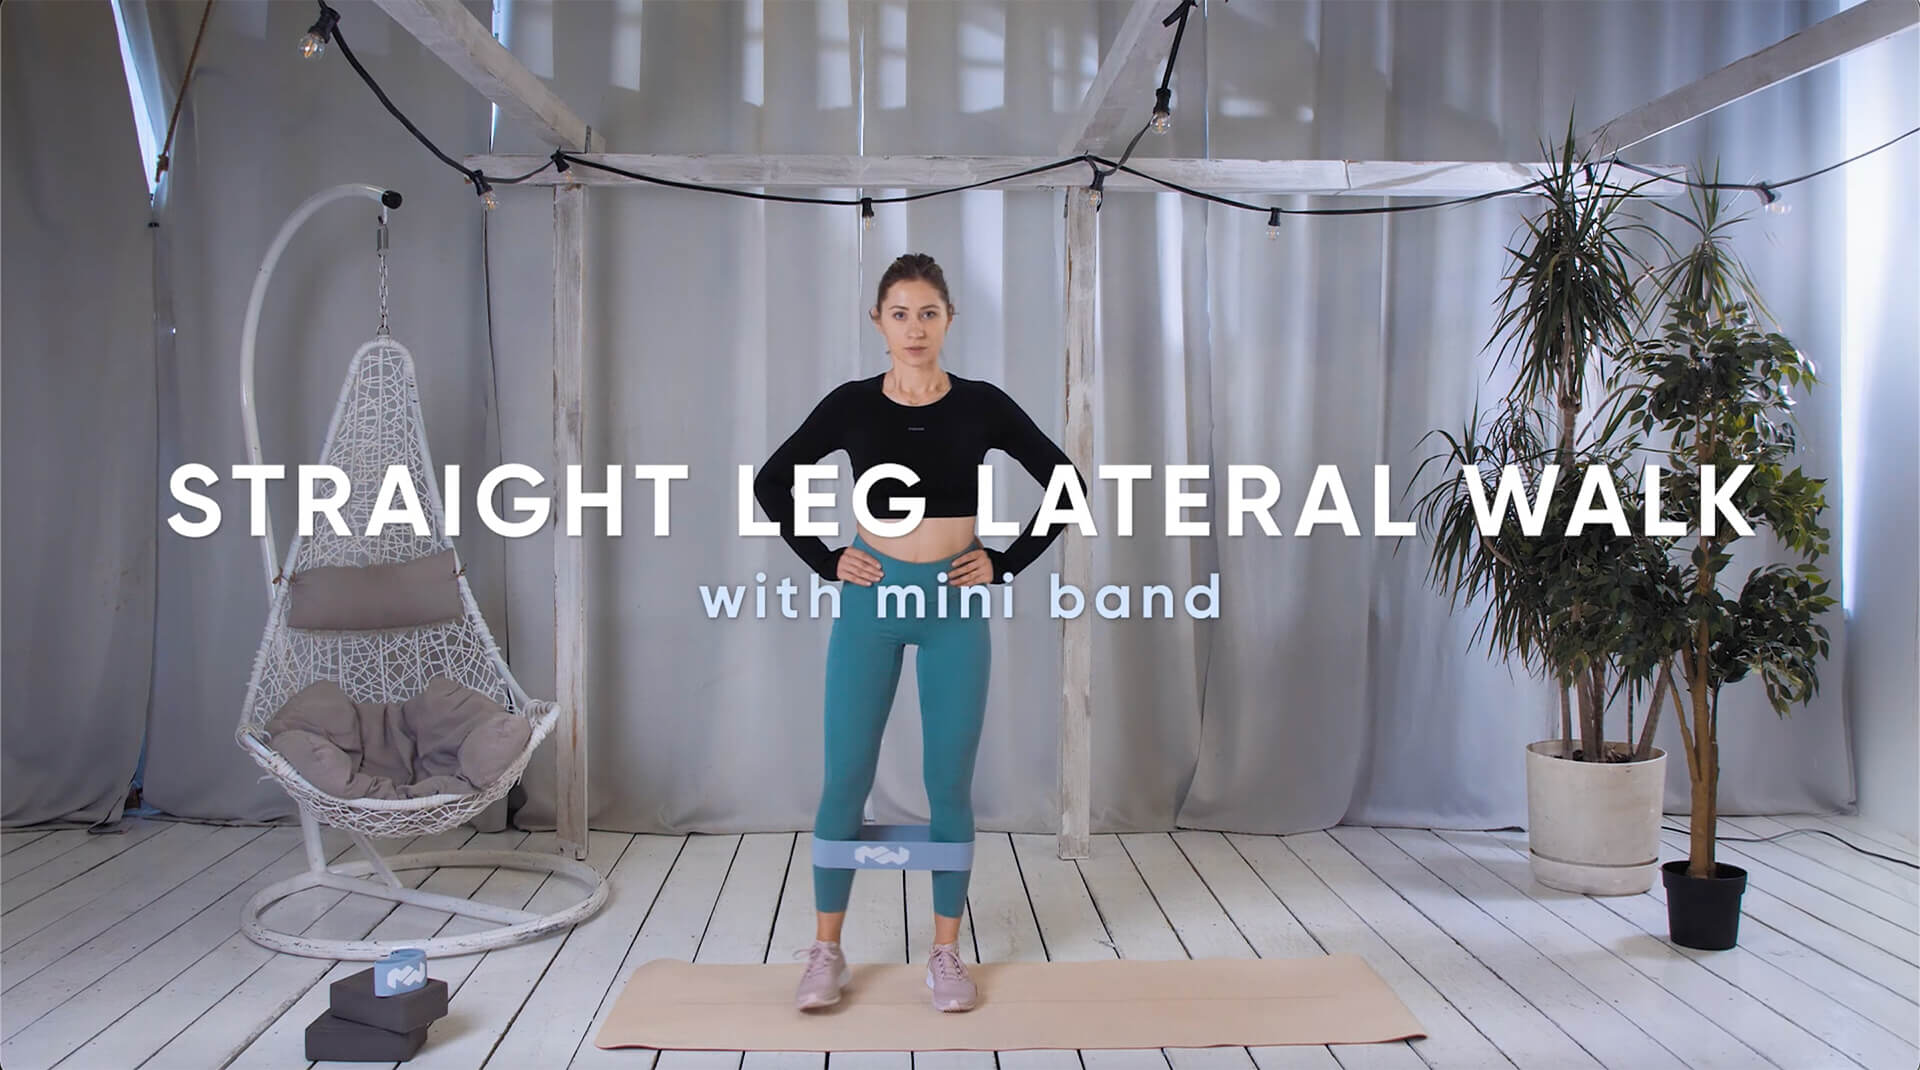 Straight leg lateral walk with mini band